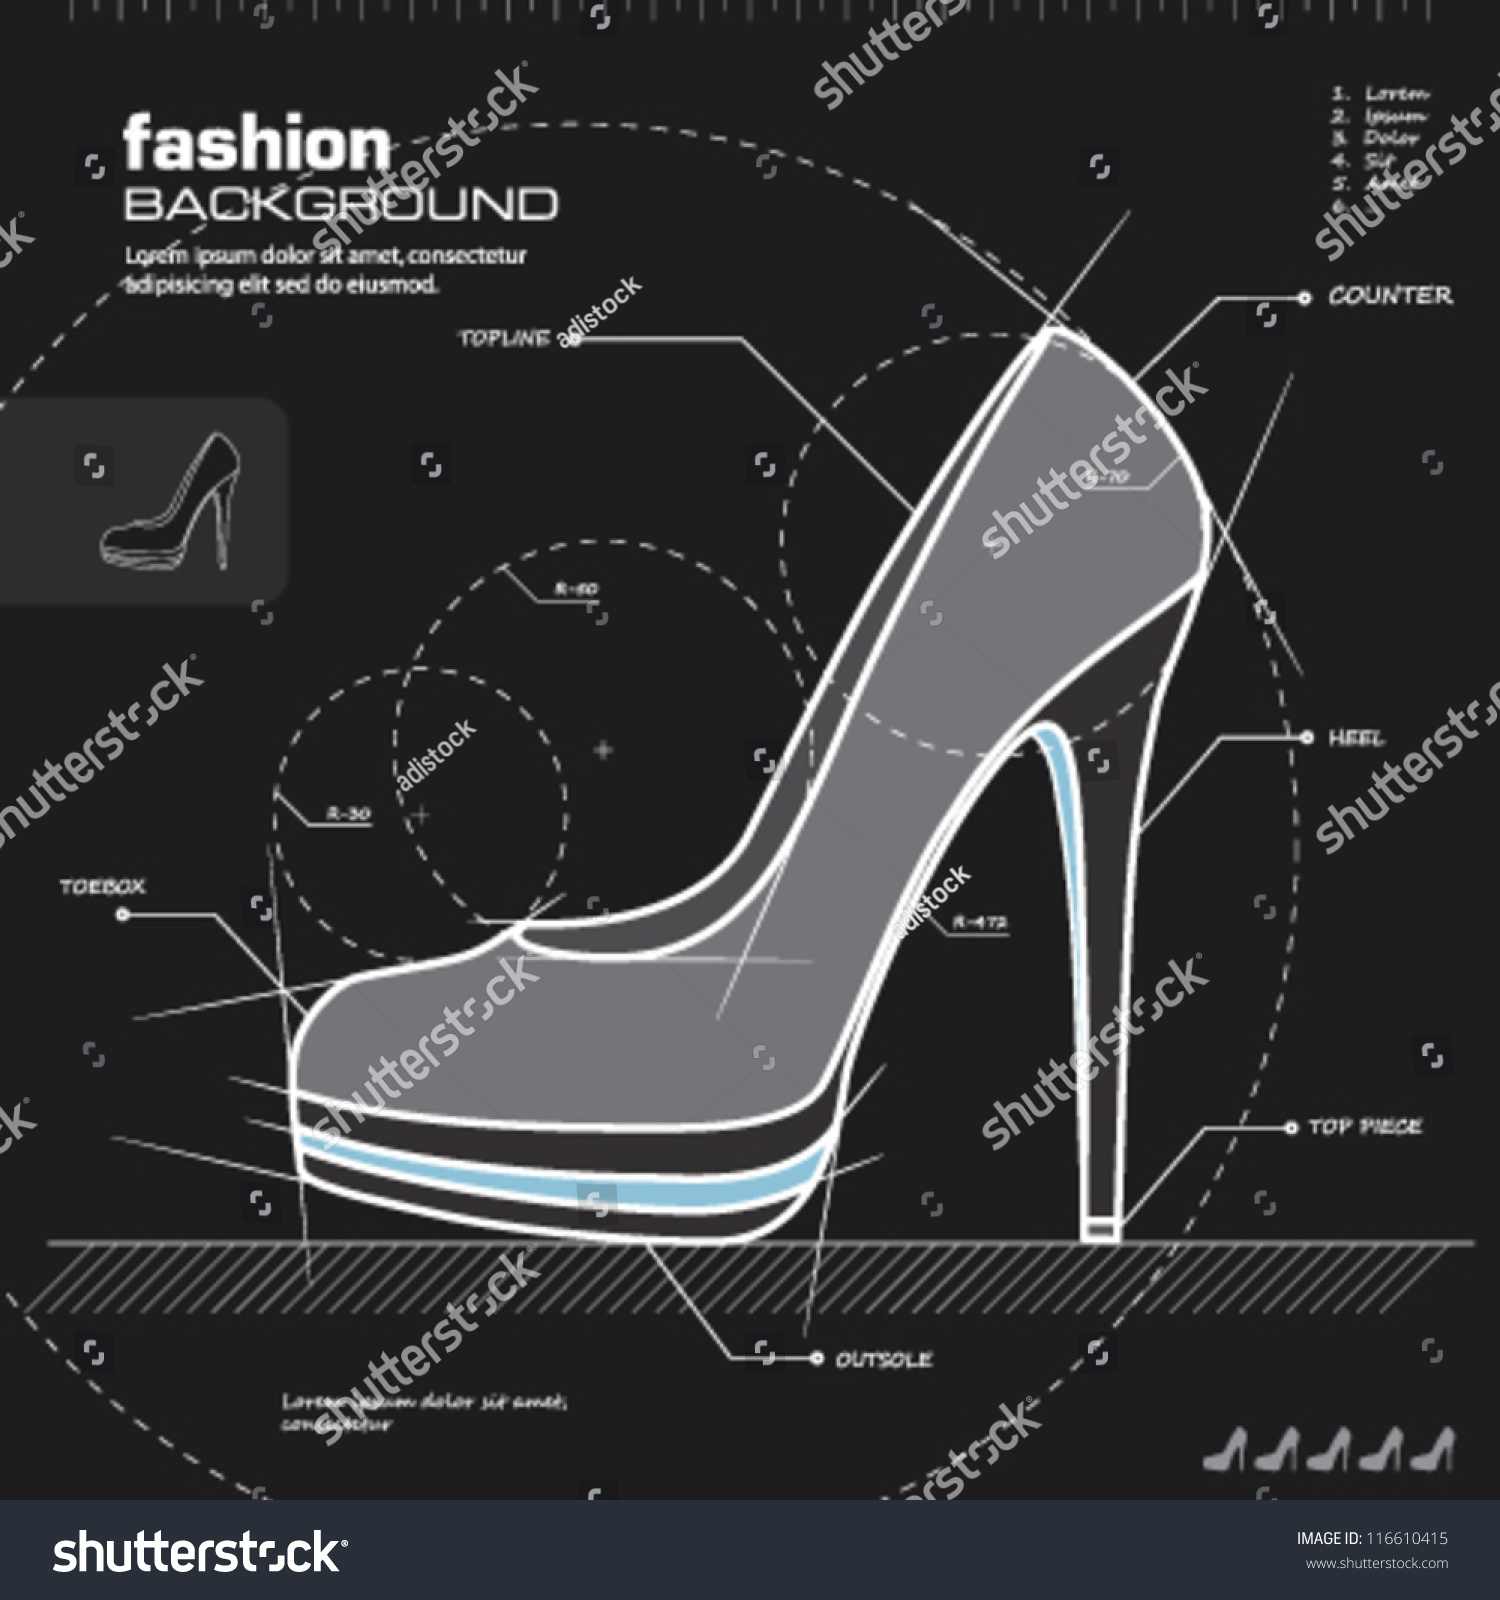 Popular Fashion Design Sketches Shoes 20152016  Fashion Trends 20162017